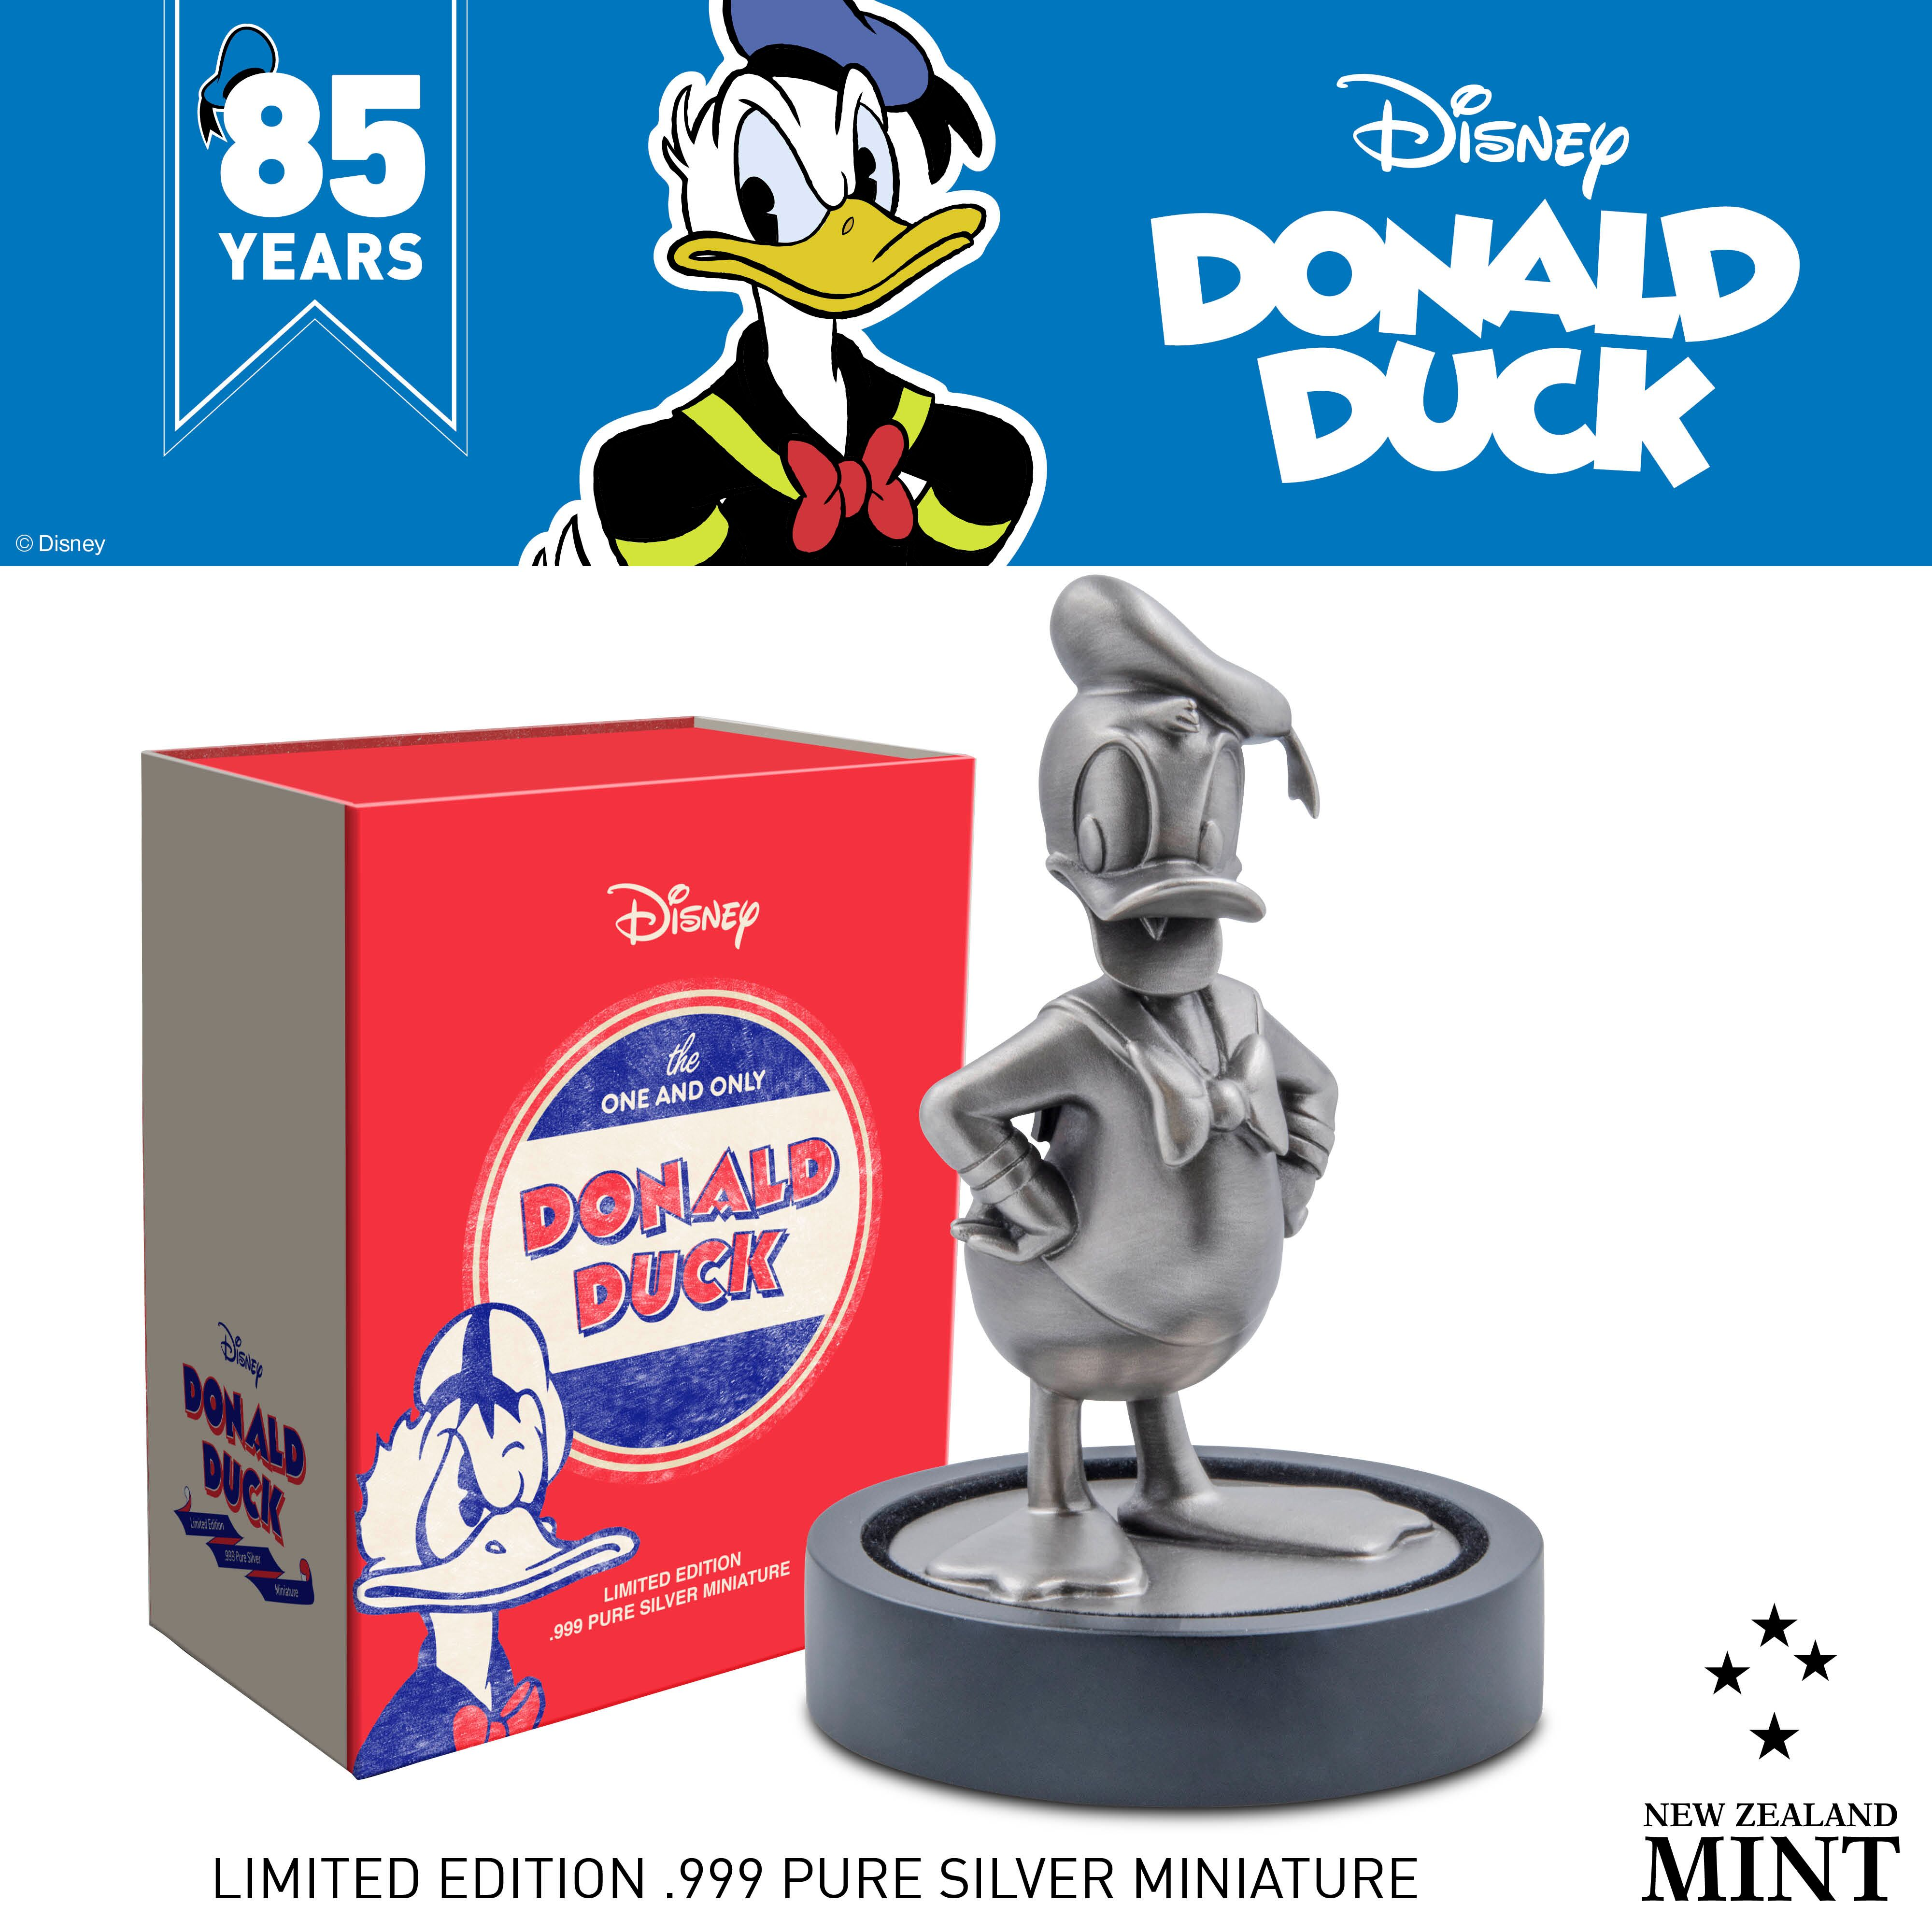 Donald Duck 85th Anniversary Coin Collection From New Zealand Mint 4